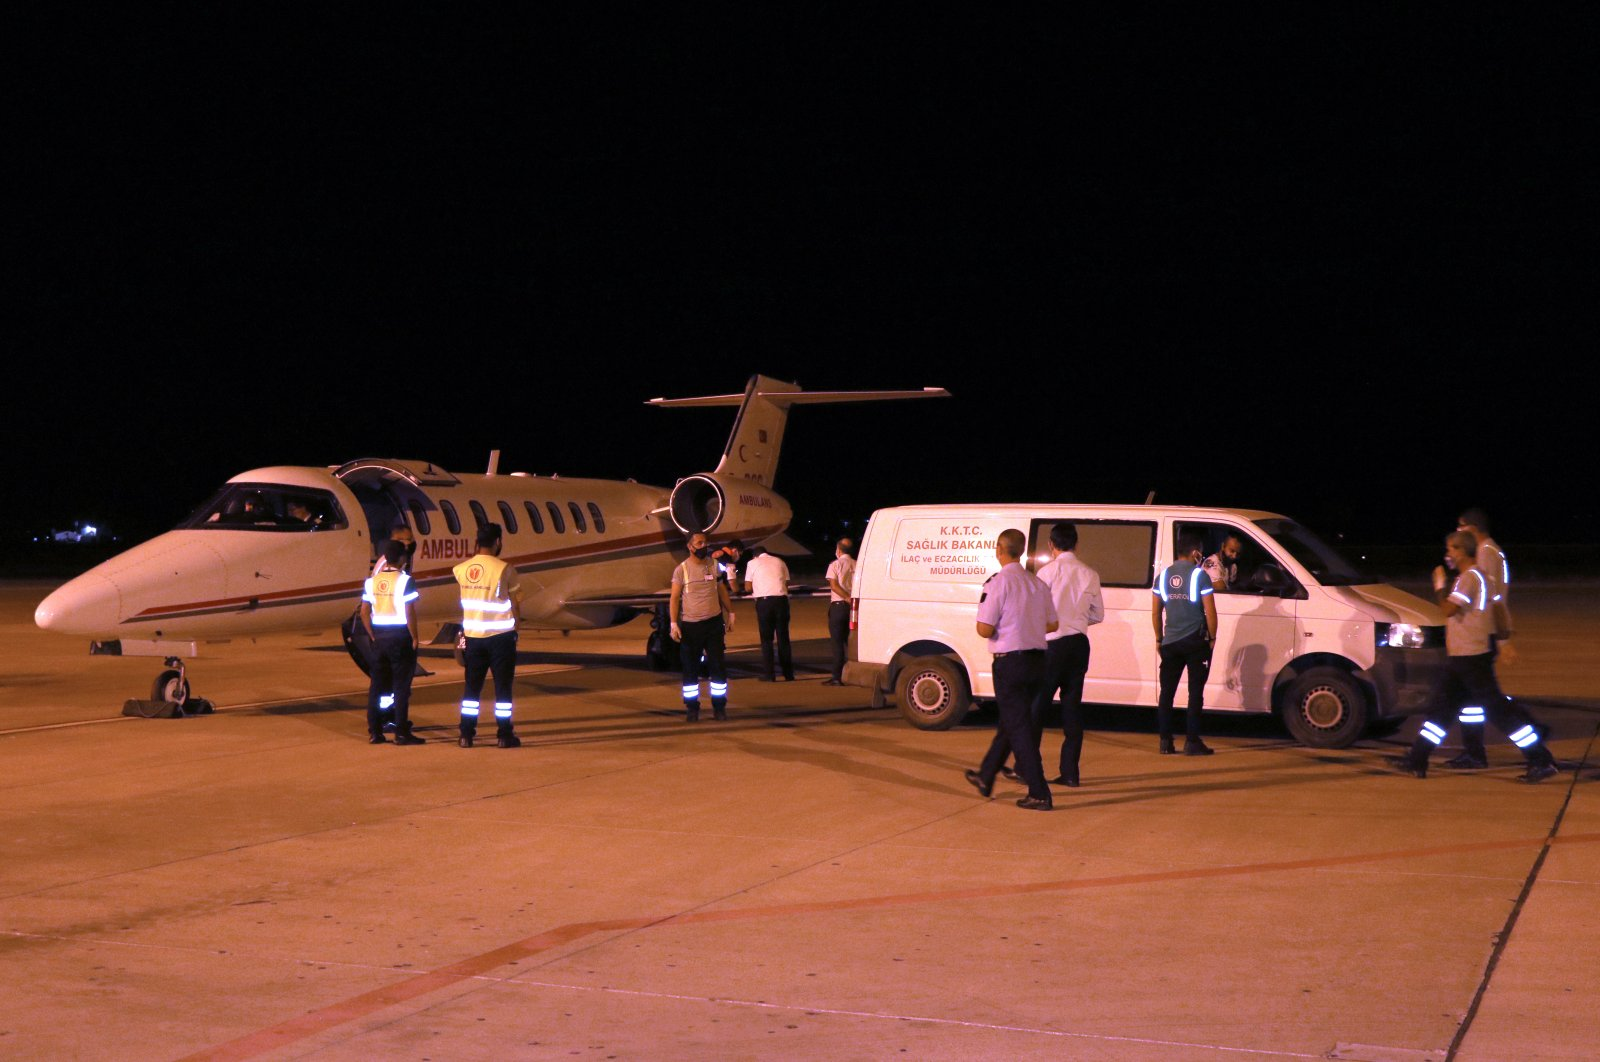 An airplane carrying COVID-19 vaccines arrives at the Ercan International Airport in the Turkish Republic of Northern Cyprus, June 17, 2021. (AA File Photo)